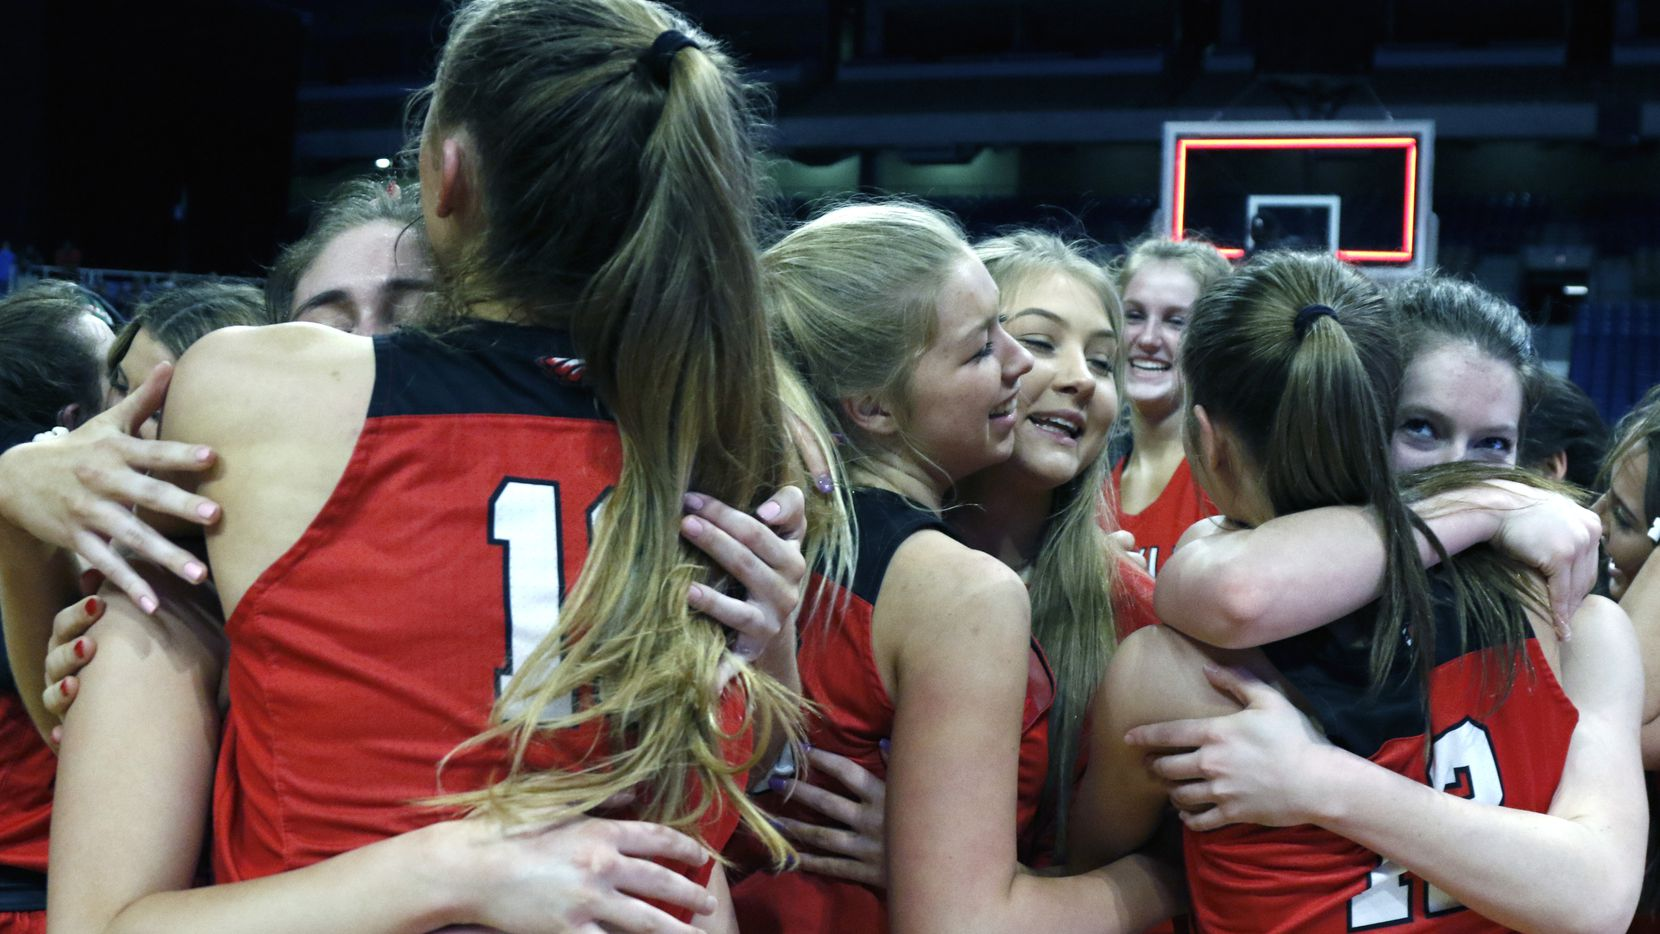 Argyle begins to celebrate after defeating Hardin-Jefferson. UIL girls basketball 4A State final between Argyle and Hardin-Jefferson on Saturday,  March 2, 2019 at the Alamodome in San Antonio, Texas. (Ron Cortes/ Special Contributor) ORG XMIT: 10043975A